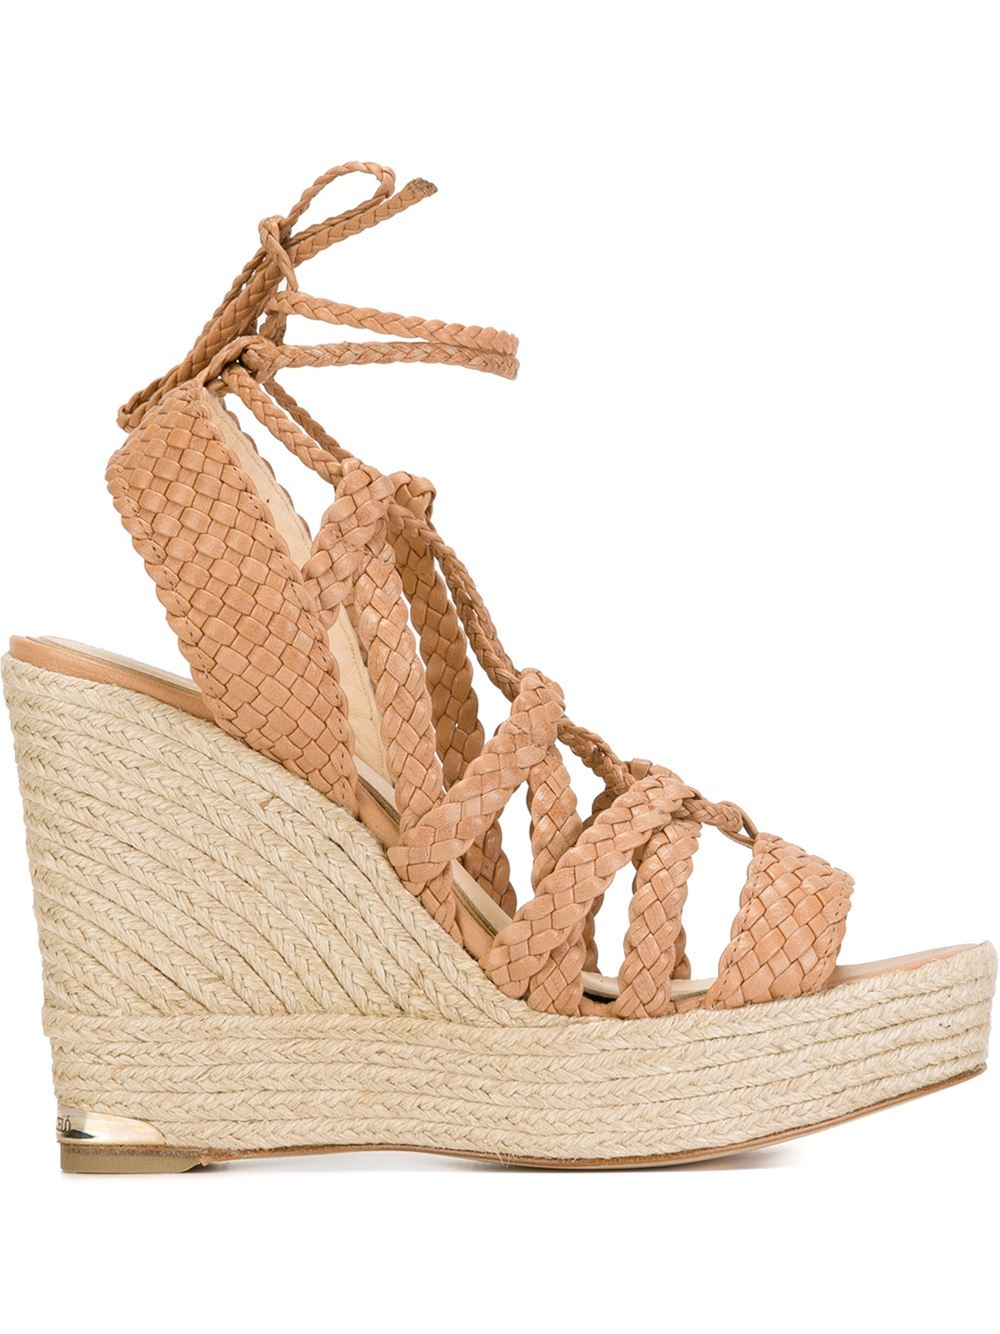 Paloma Barcel 243 Paloma Barcel 243 Braided Wedge Sandals In